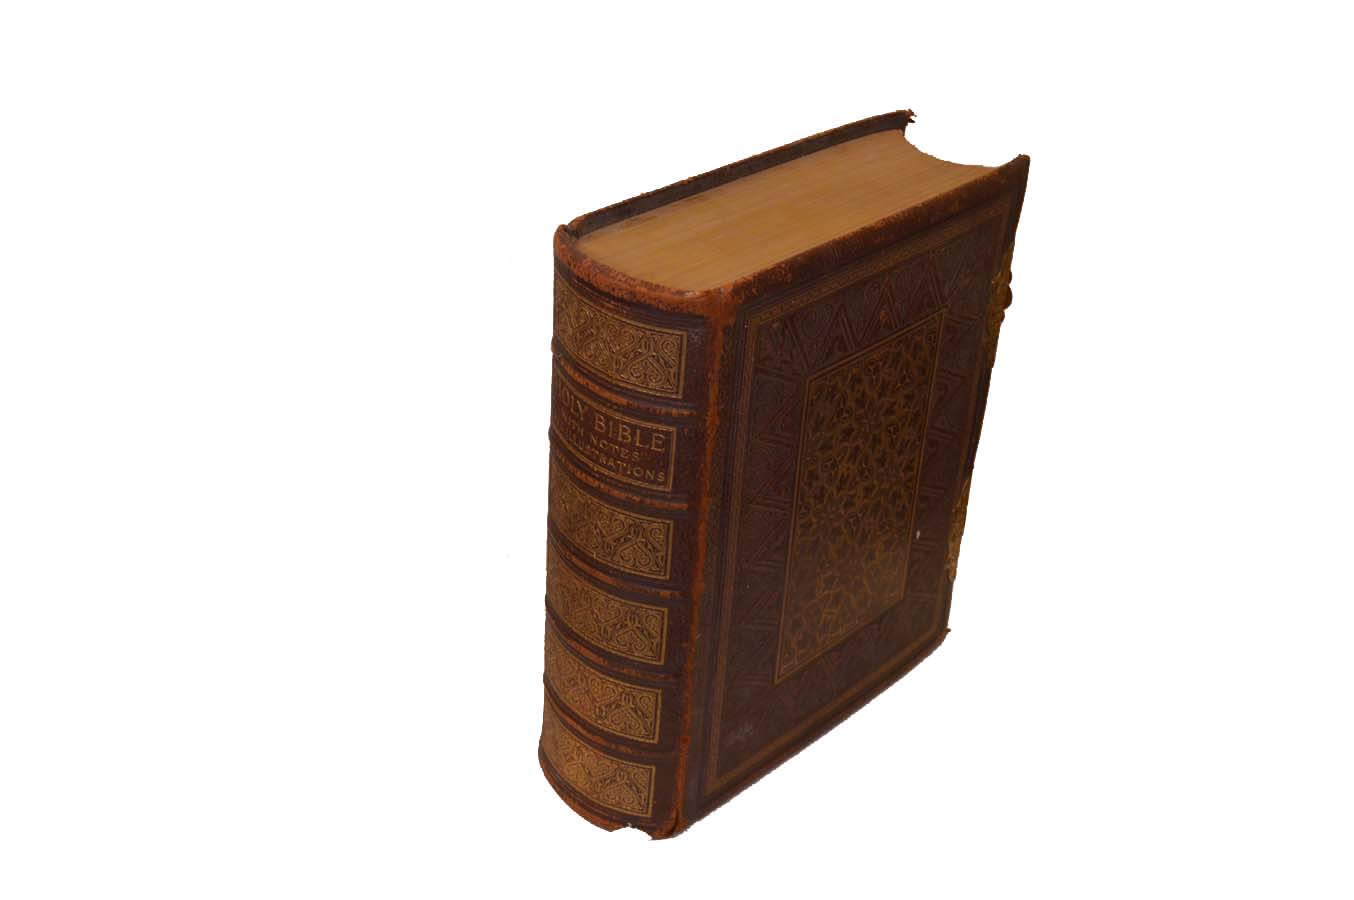 Lot 52 - A Victorian Brass Bound Family Bible